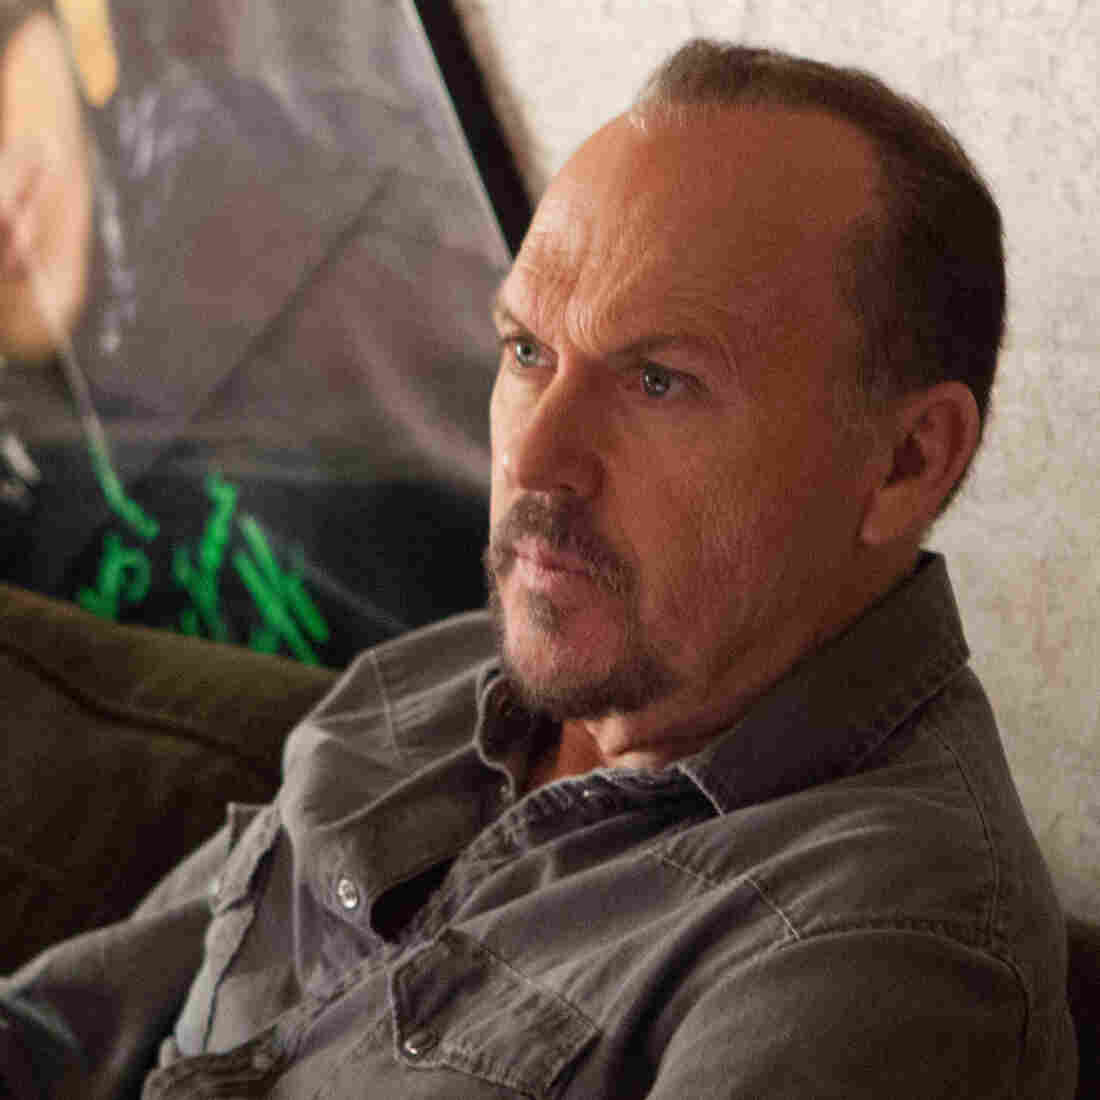 Michael Keaton: As An Actor, You Must Lock In And Let Go